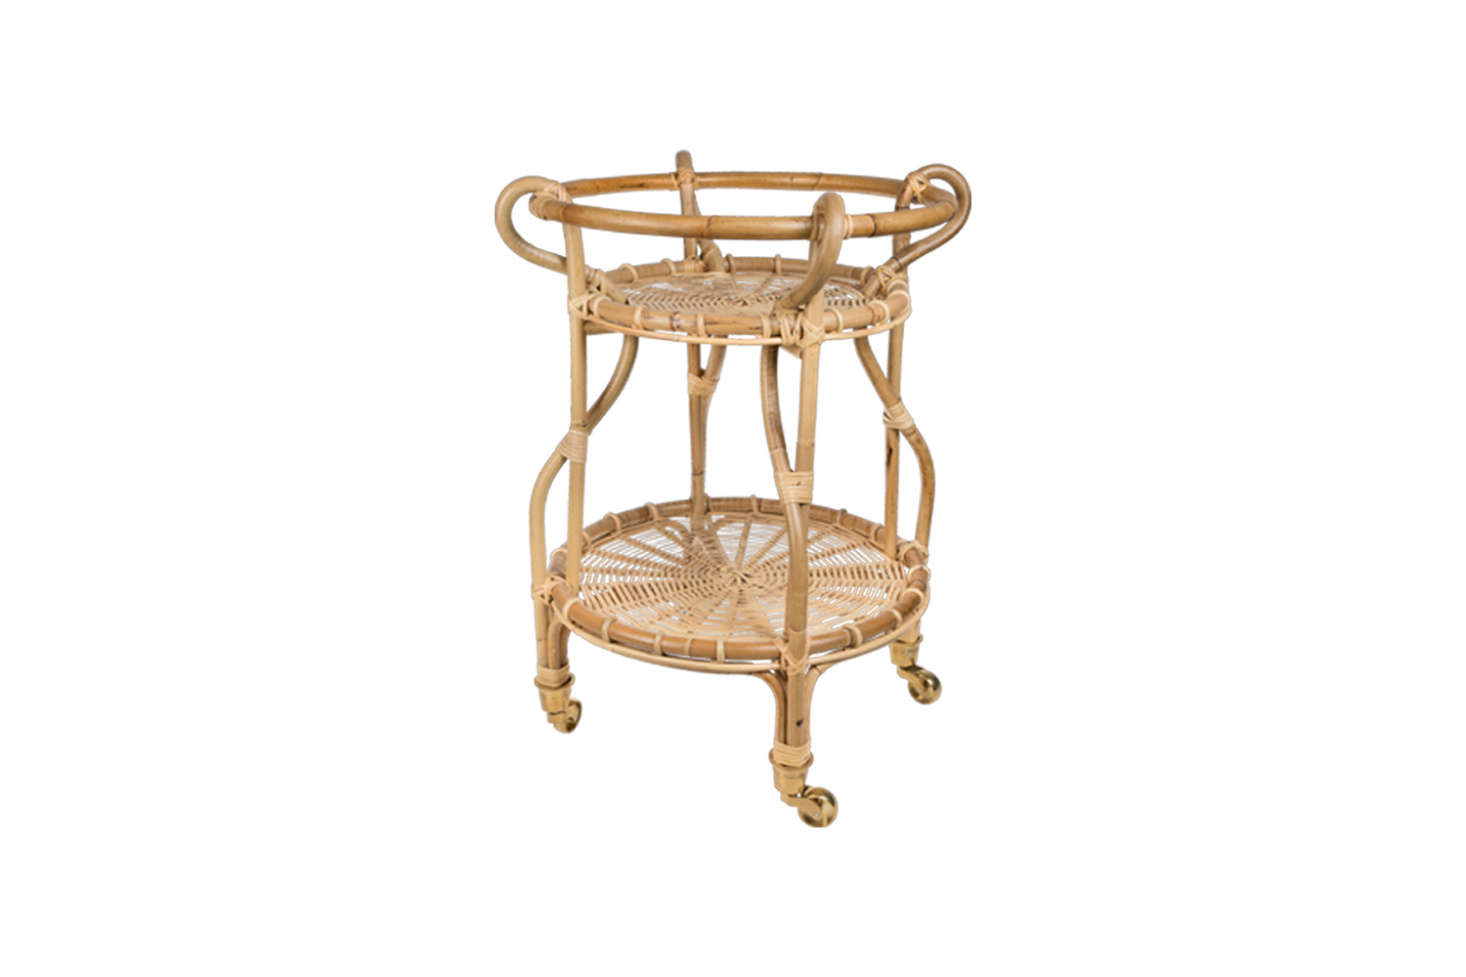 TheSika Design Fratellino Wicker Table designed by Franco Albini and Franca Helg in 5src=